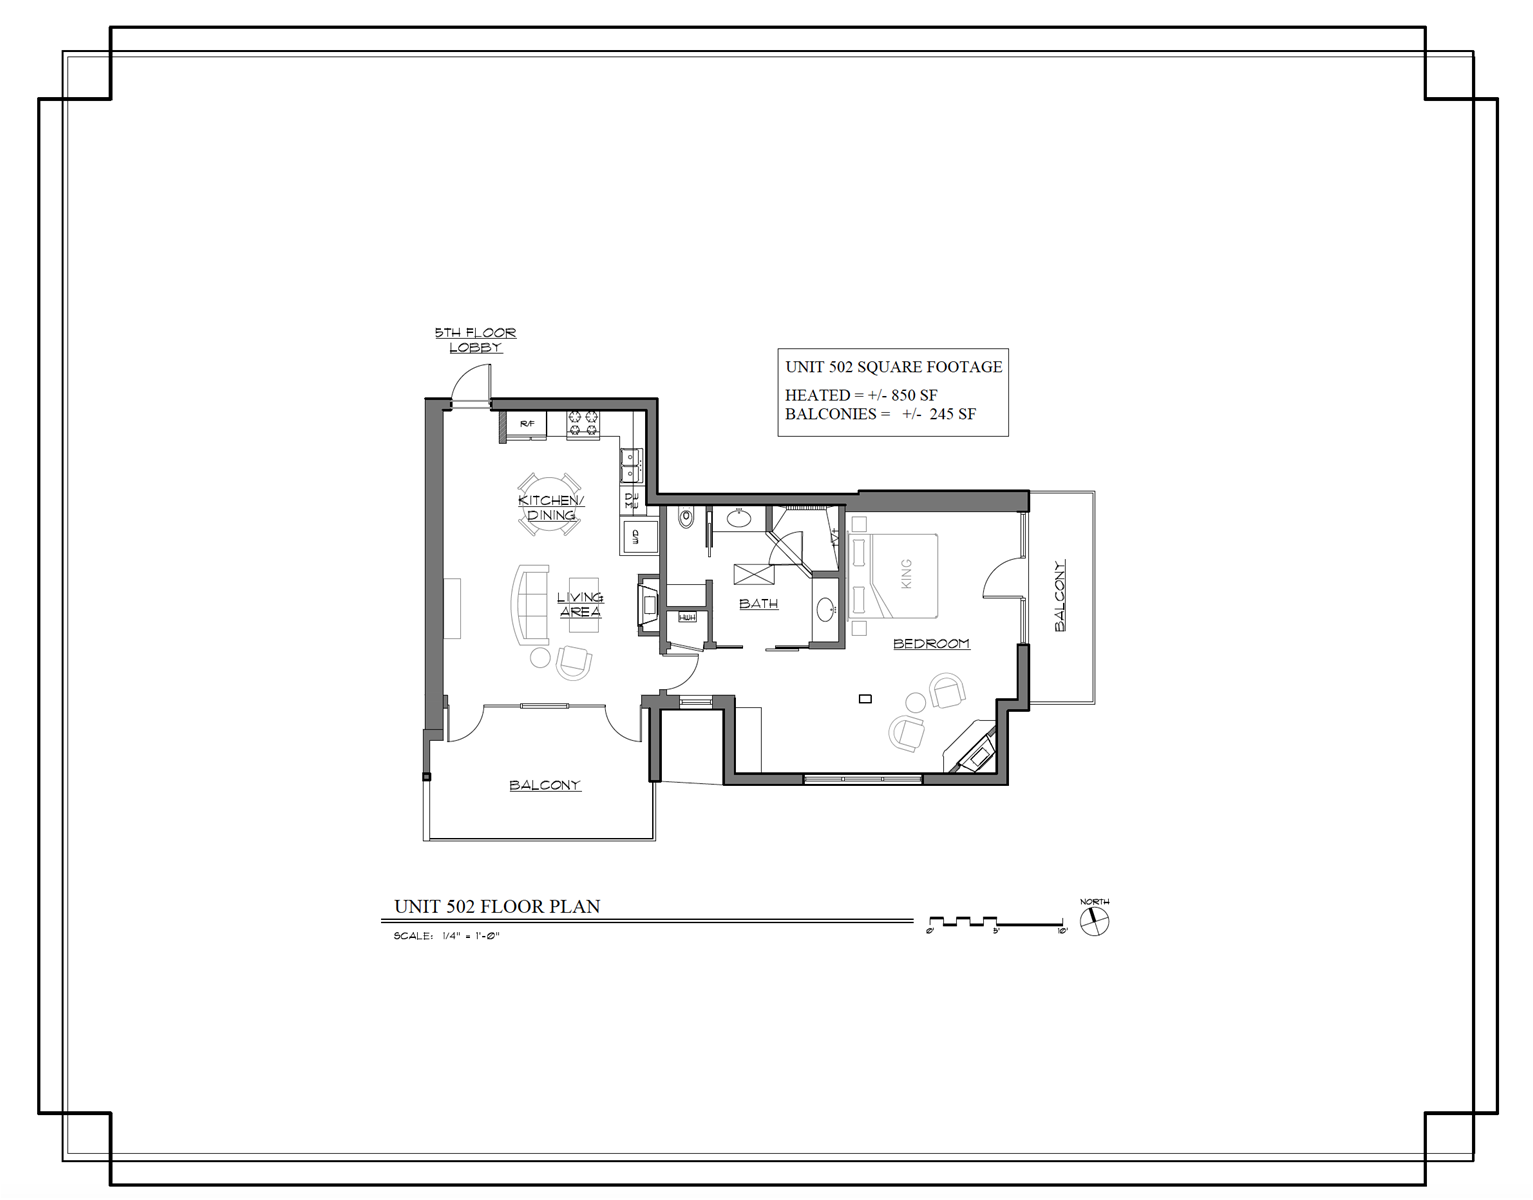 Floor Plan for The Lincoln 502, 1 Bed / 1 Bath, Luxury Loft Style Condo